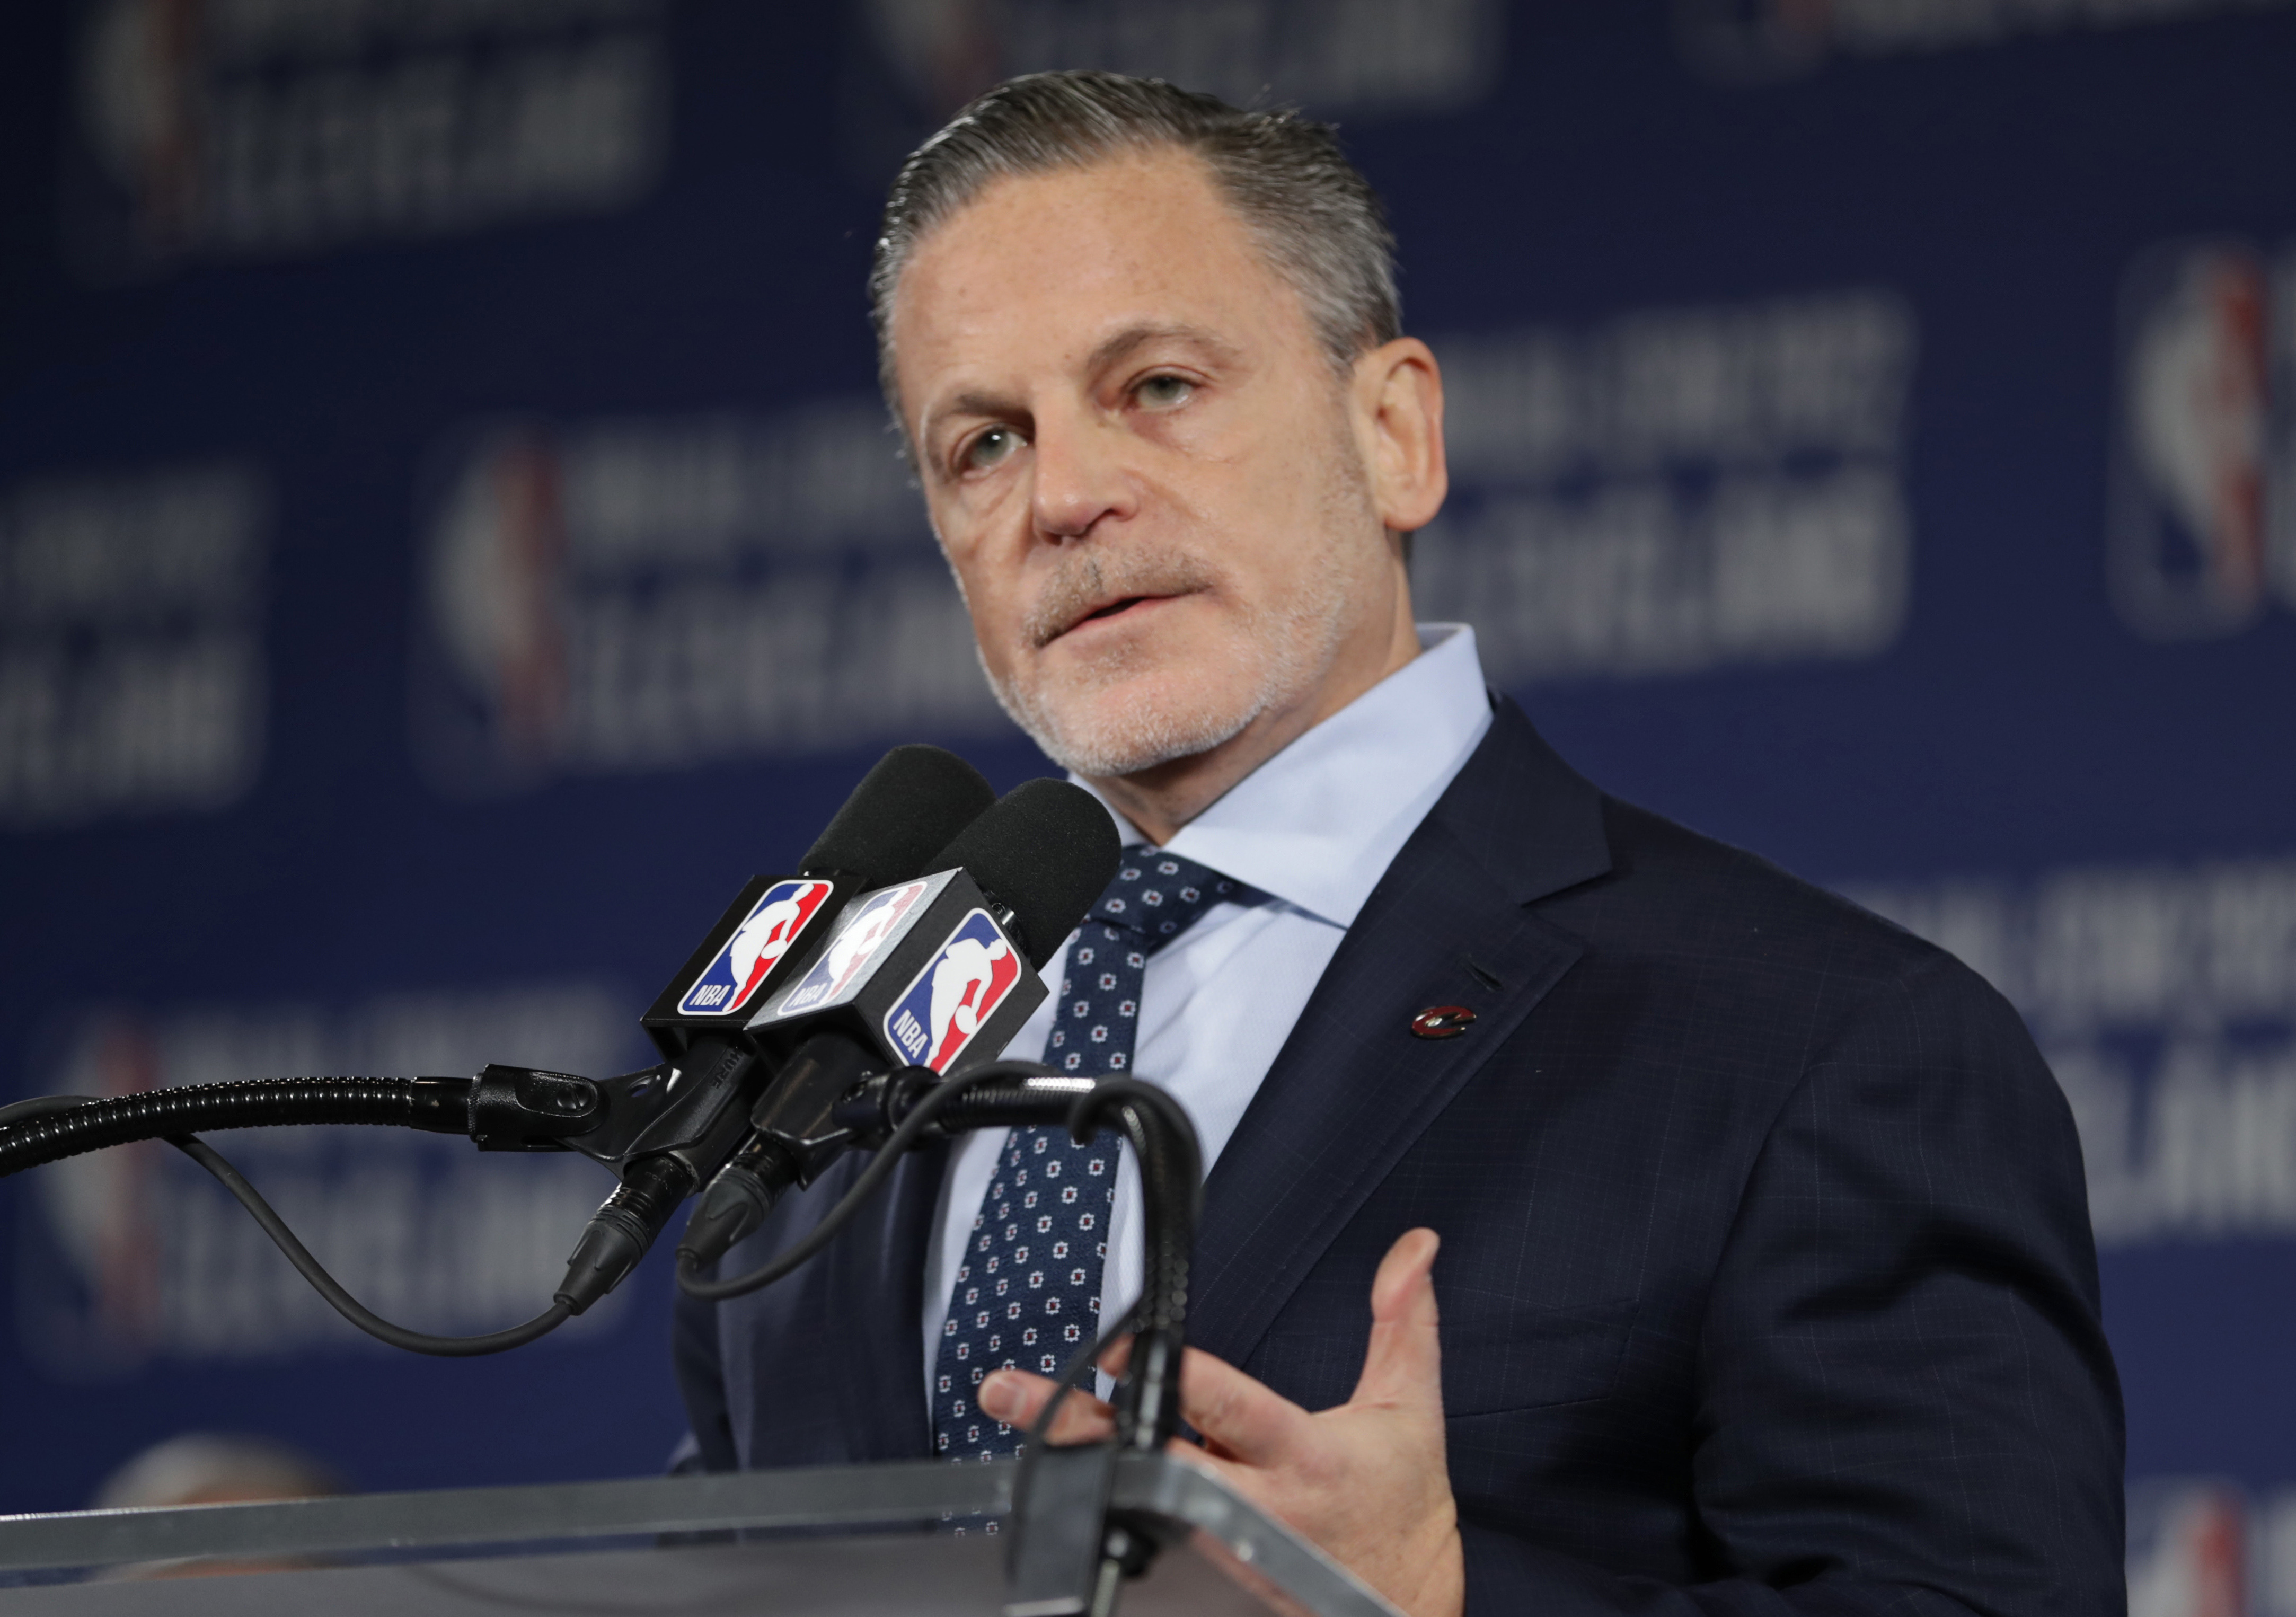 Dan Gilbert returns to Detroit home to recover from stroke